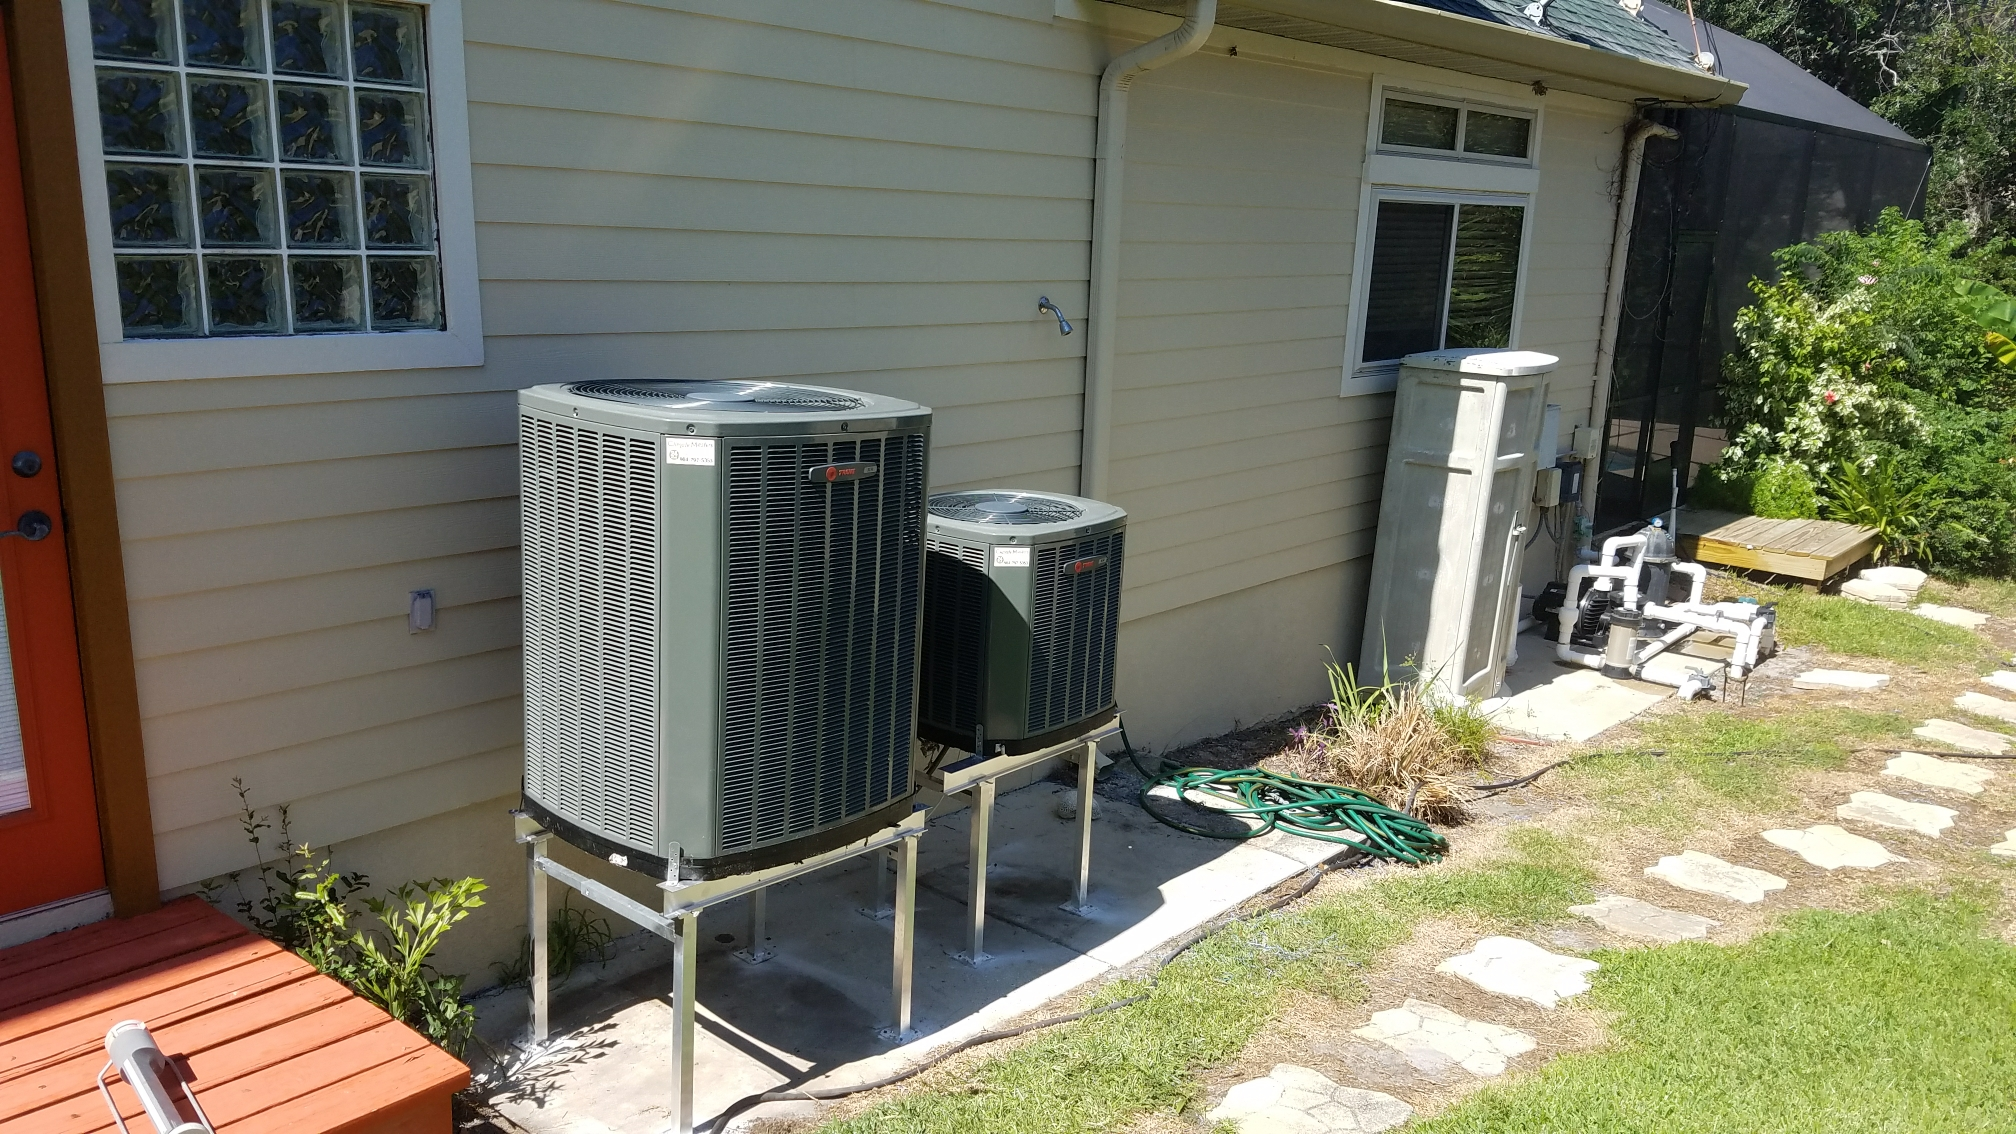 Saint Augustine, FL - Raised 2 trane condensers on metal stands